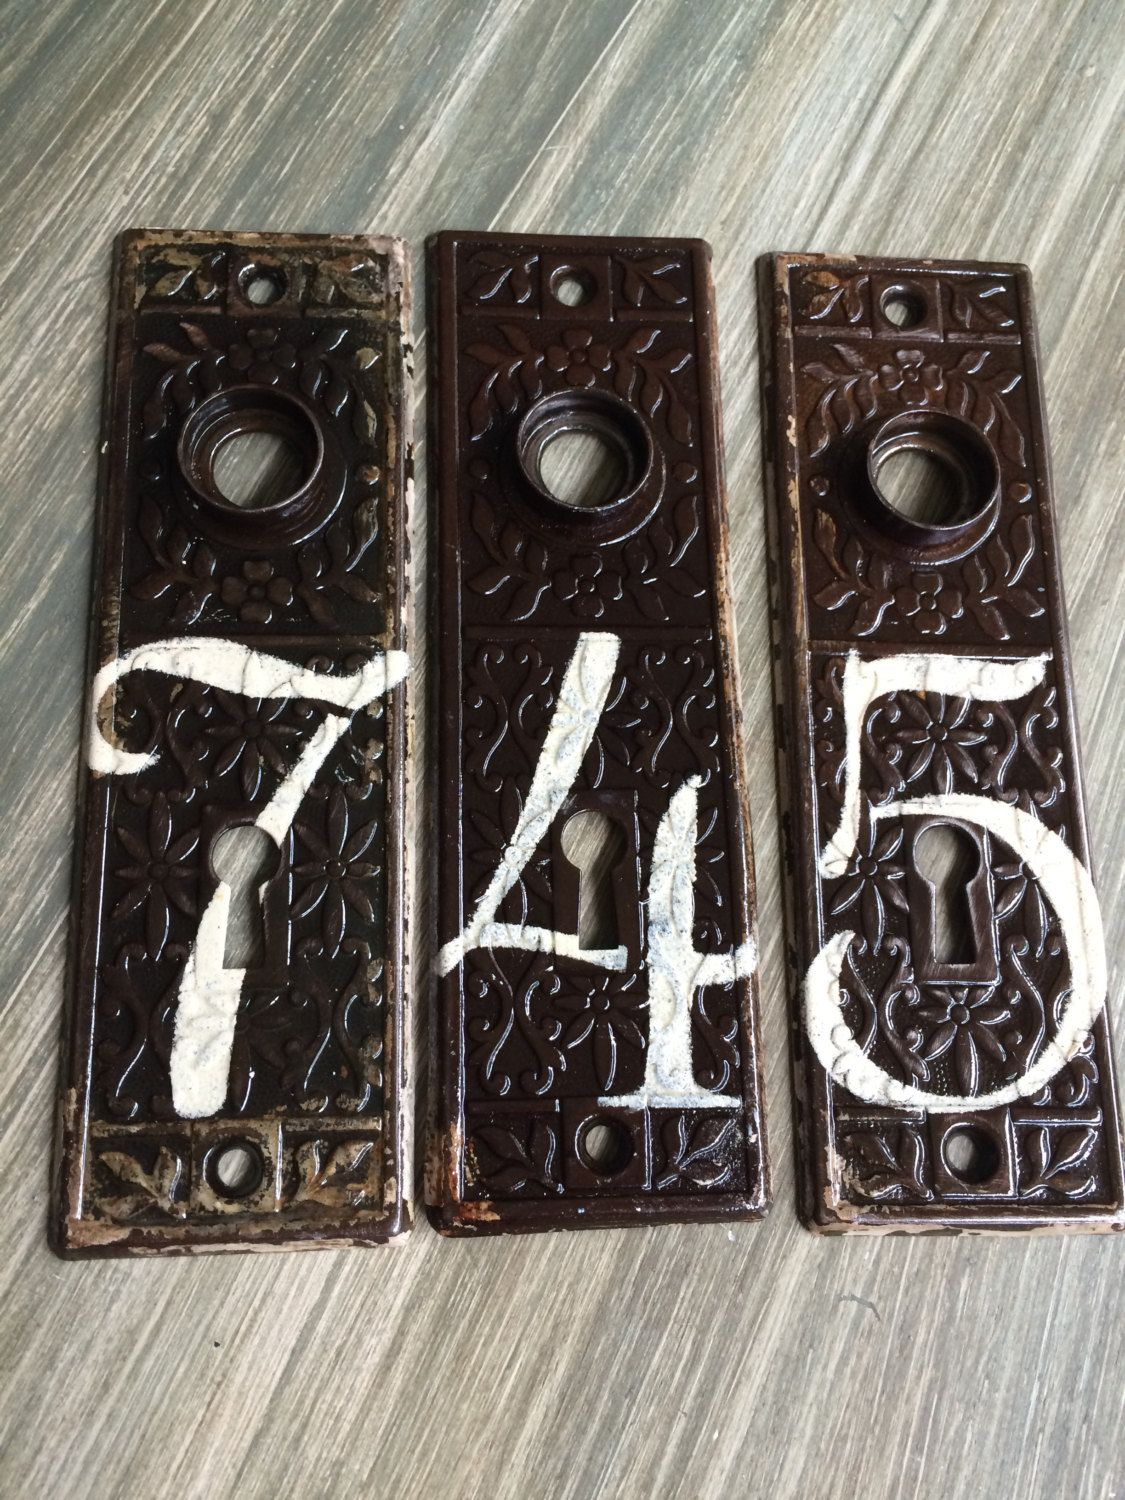 Vintage House Numbers, Antique Door Plates, Architectural Salvage, Old  House Numbers, Vintage Metal, Victorian by RagtagStudio on Etsy - Vintage House Numbers, Antique Door Plates, Wedding Table Numbers